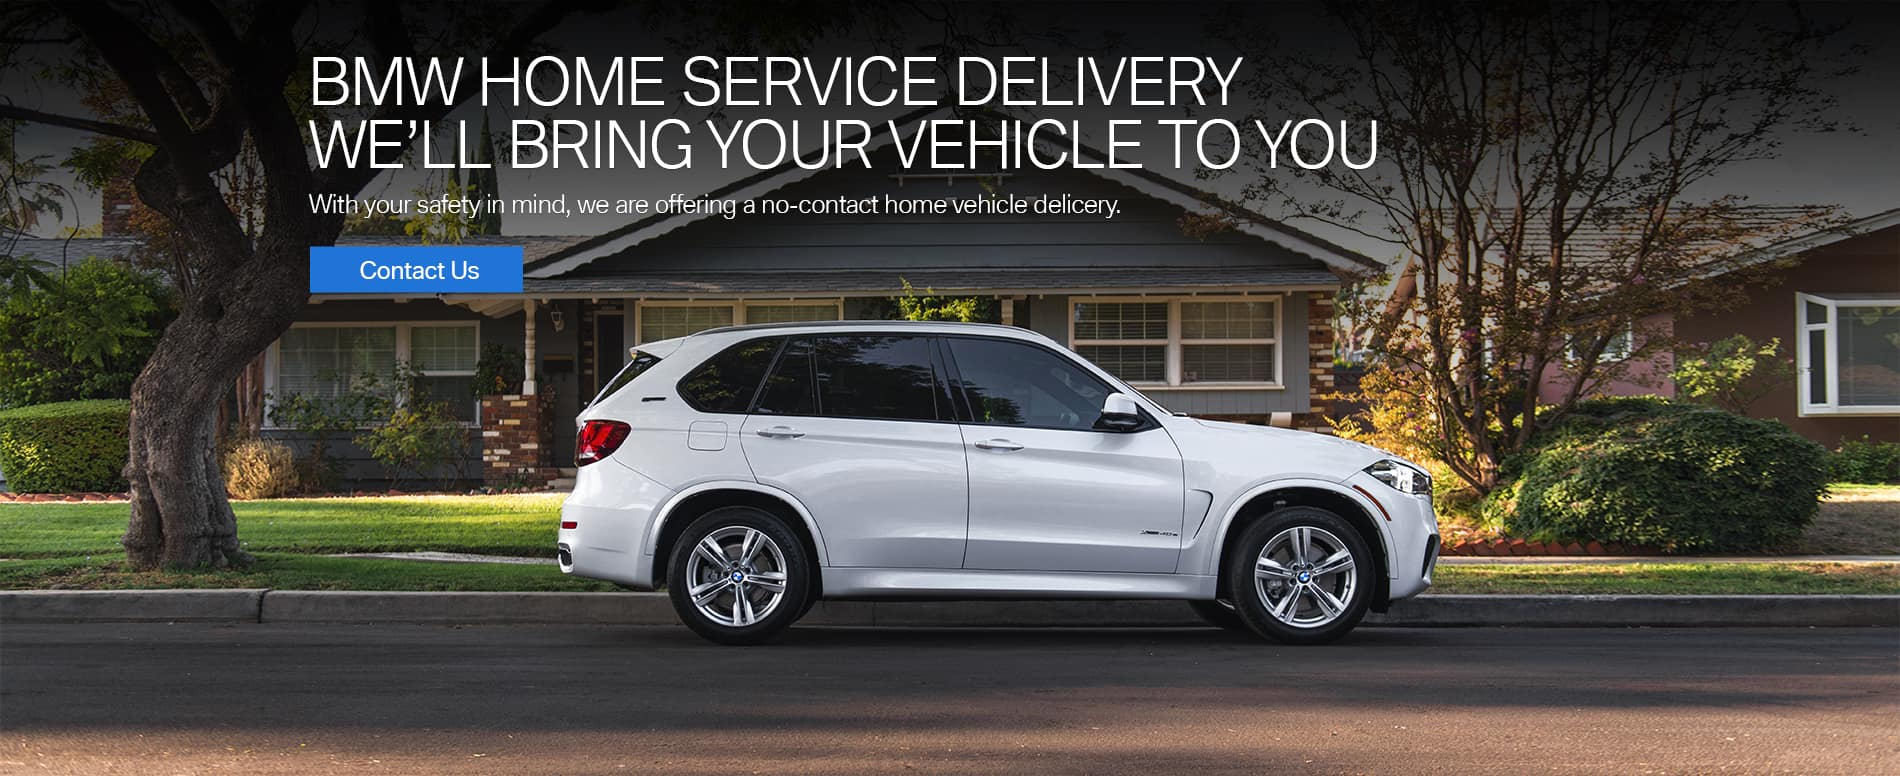 bmw-home-service-delivery